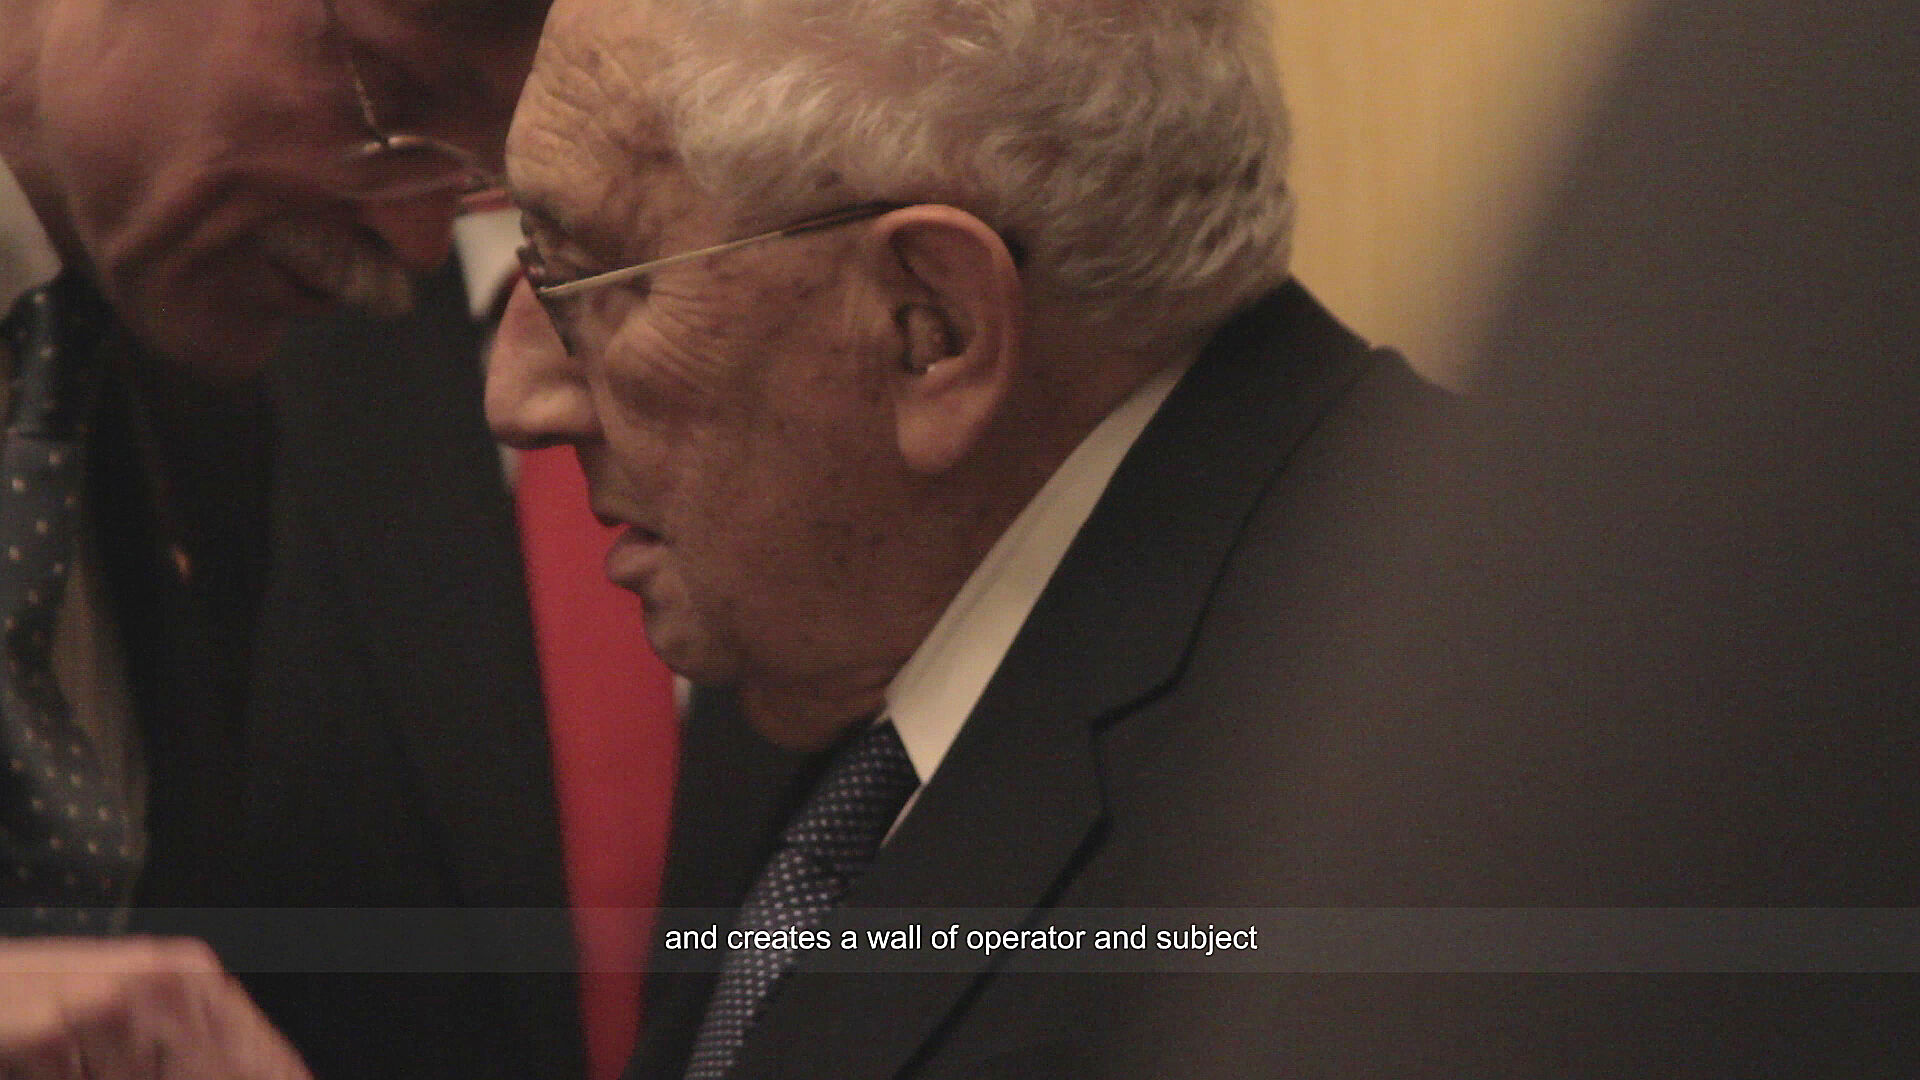 A still shot of a video of two old men in suit talking.